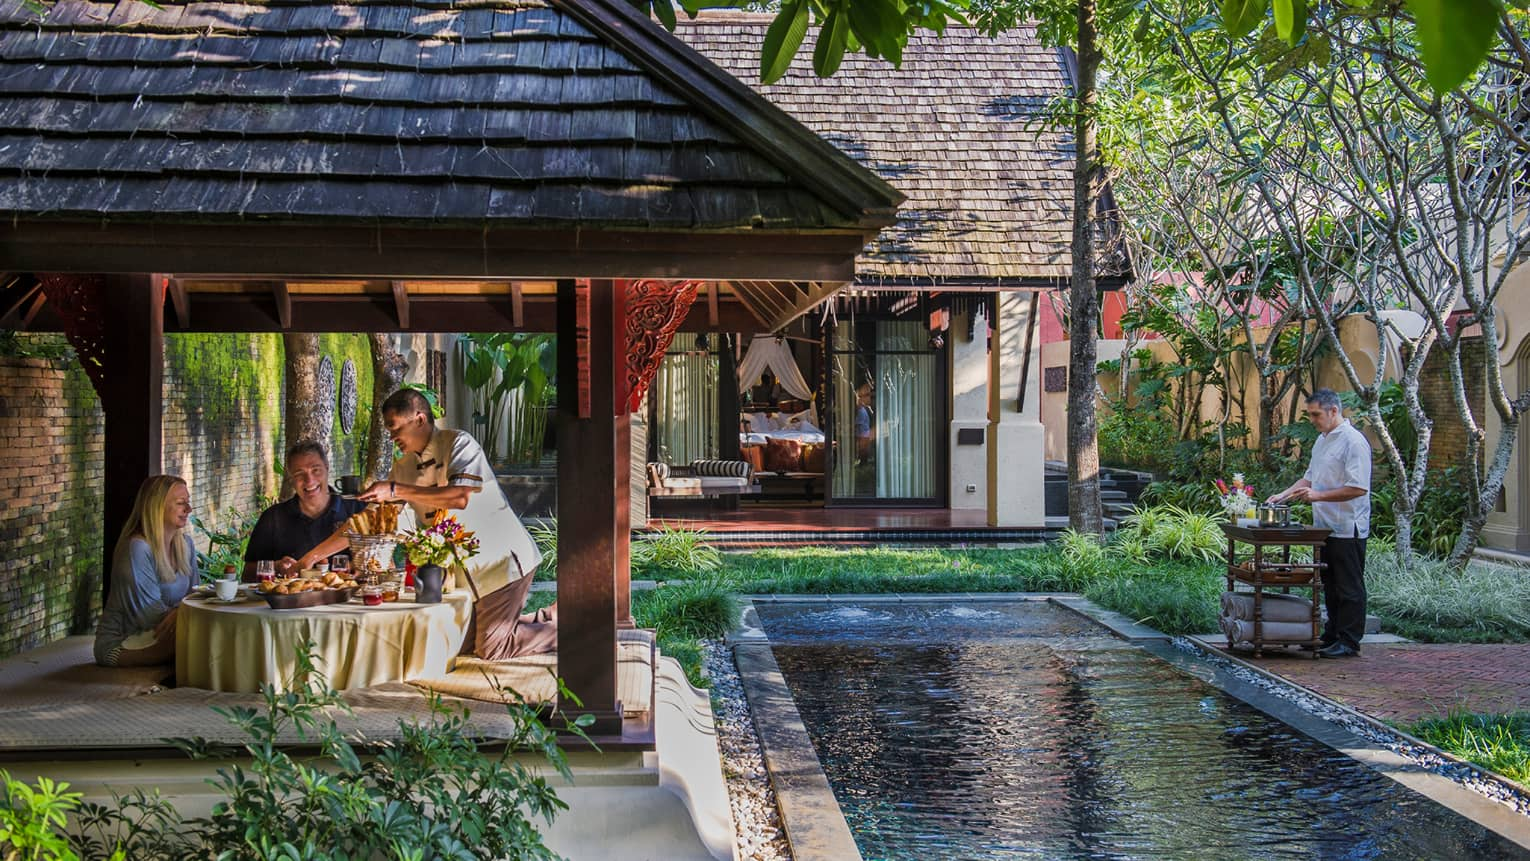 Staff serve couple under covered dining gazebo by long villa pool